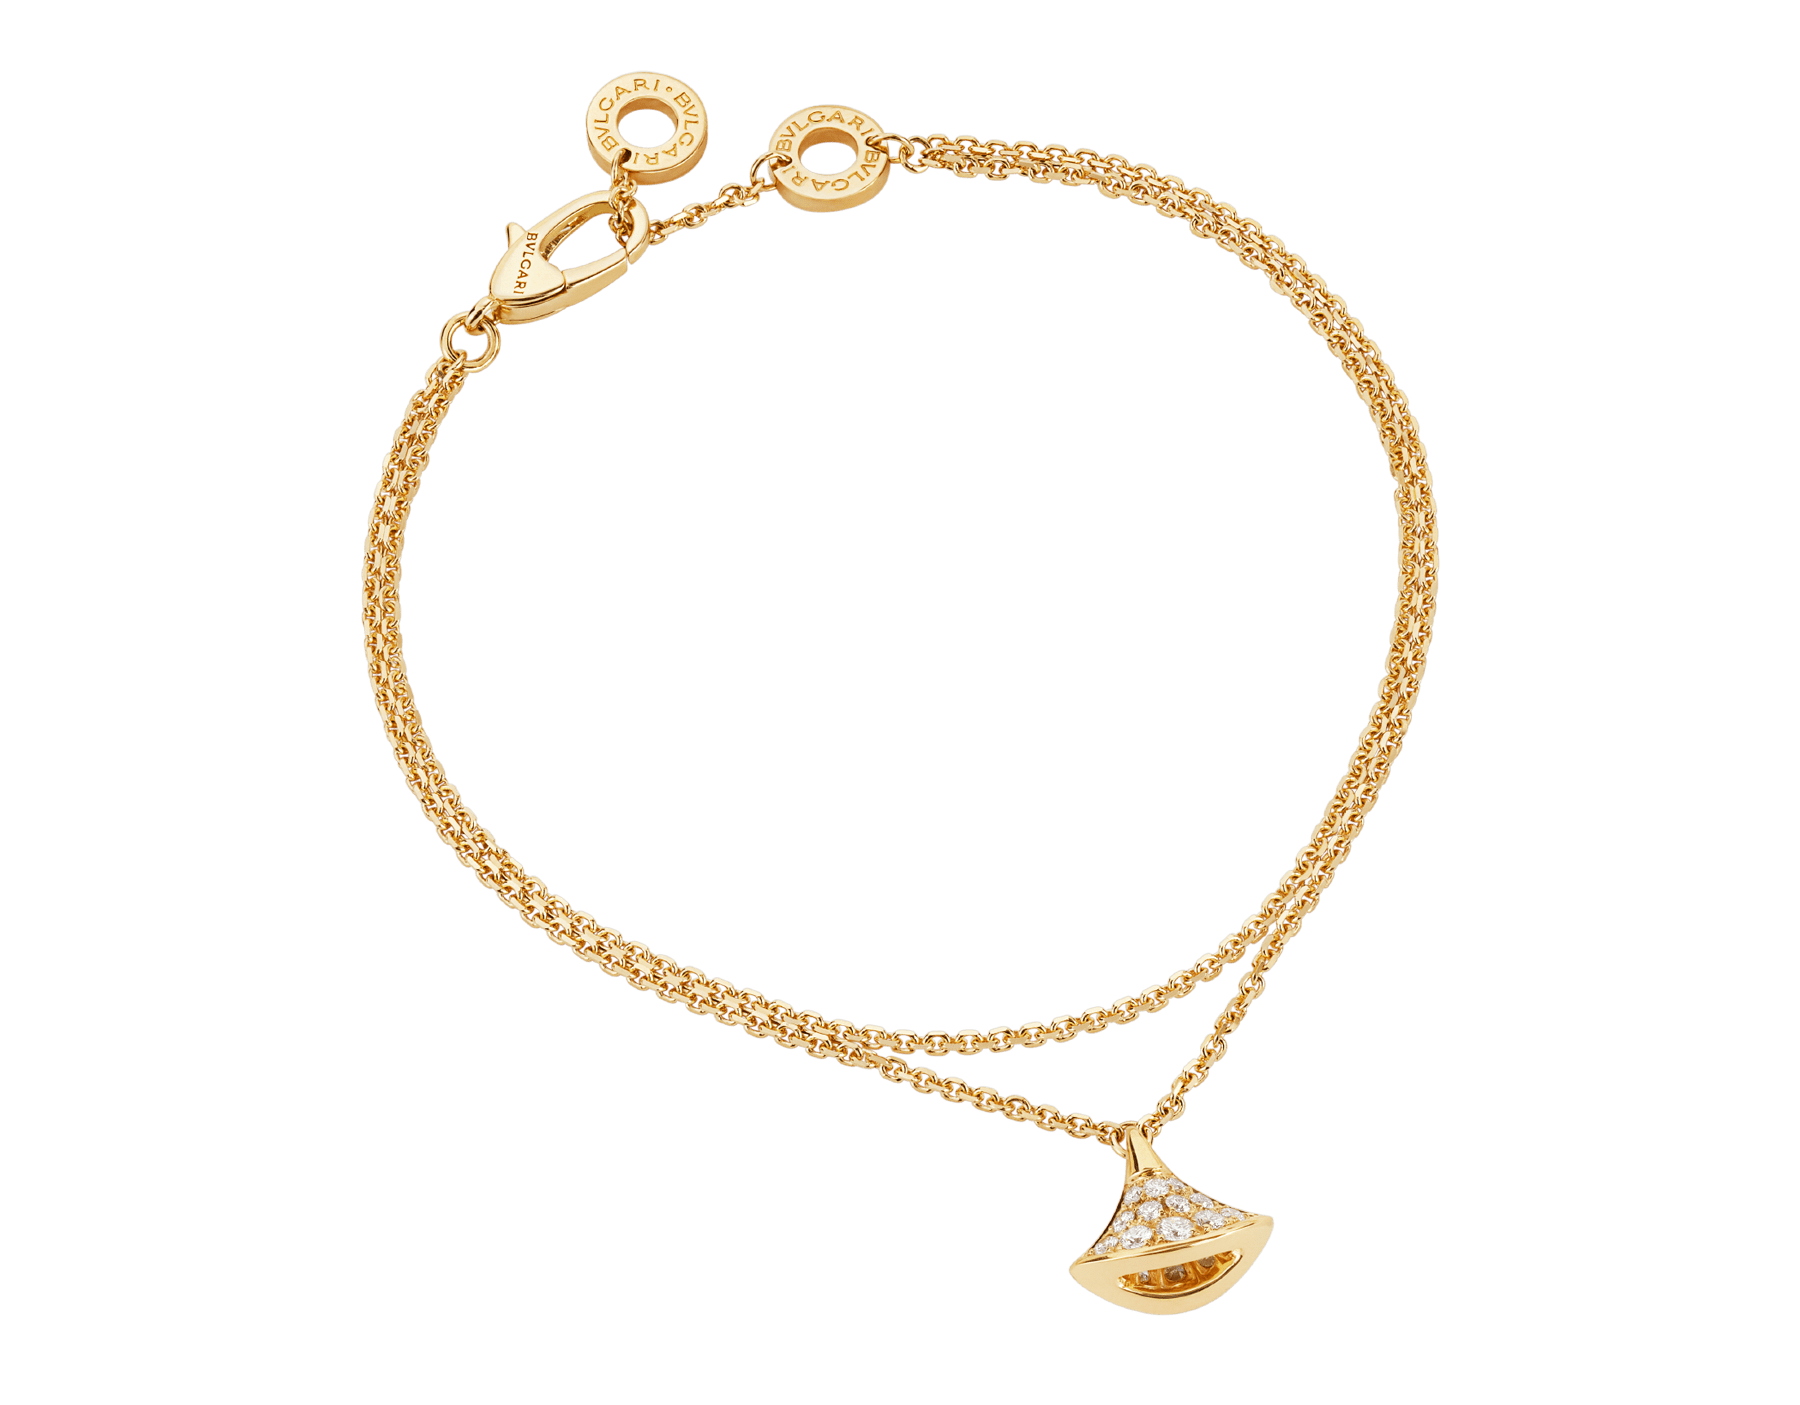 DIVAS' DREAM 18 kt yellow gold bracelet with pendant in full pavé diamonds BR858990 image 1